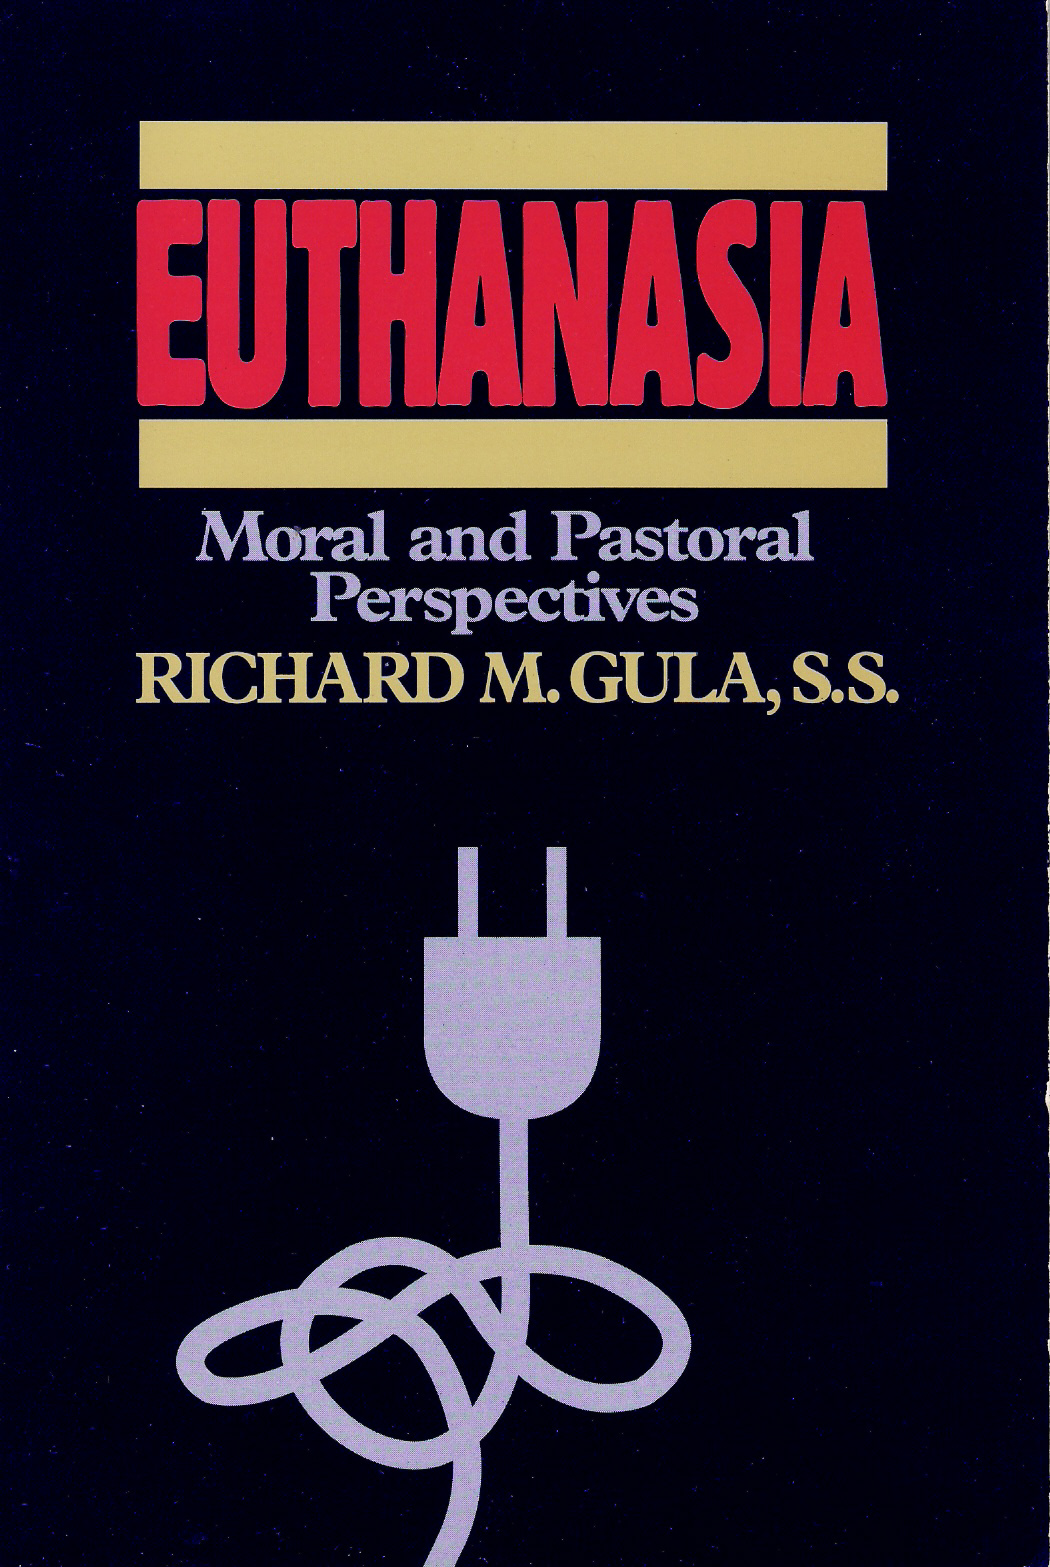 bioethics of euthanasia Following the publication of the first part of this article dealing with bioethics and infanticide,[1] i received correspondence from a former colleague, dr richard l.